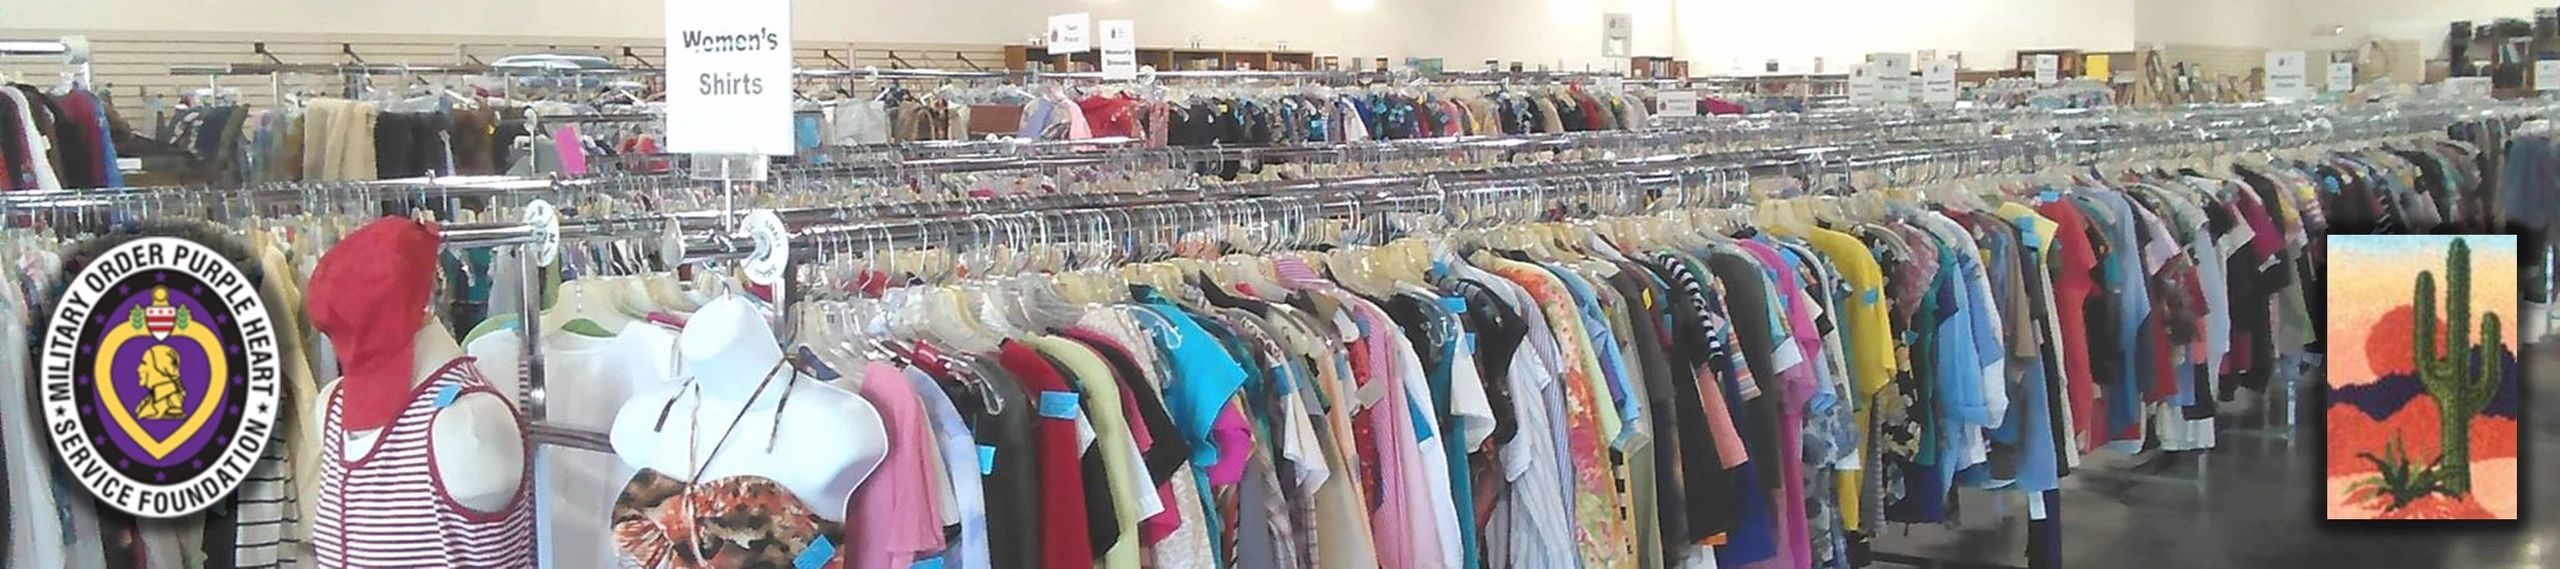 Thrift store with rows of clothing racks